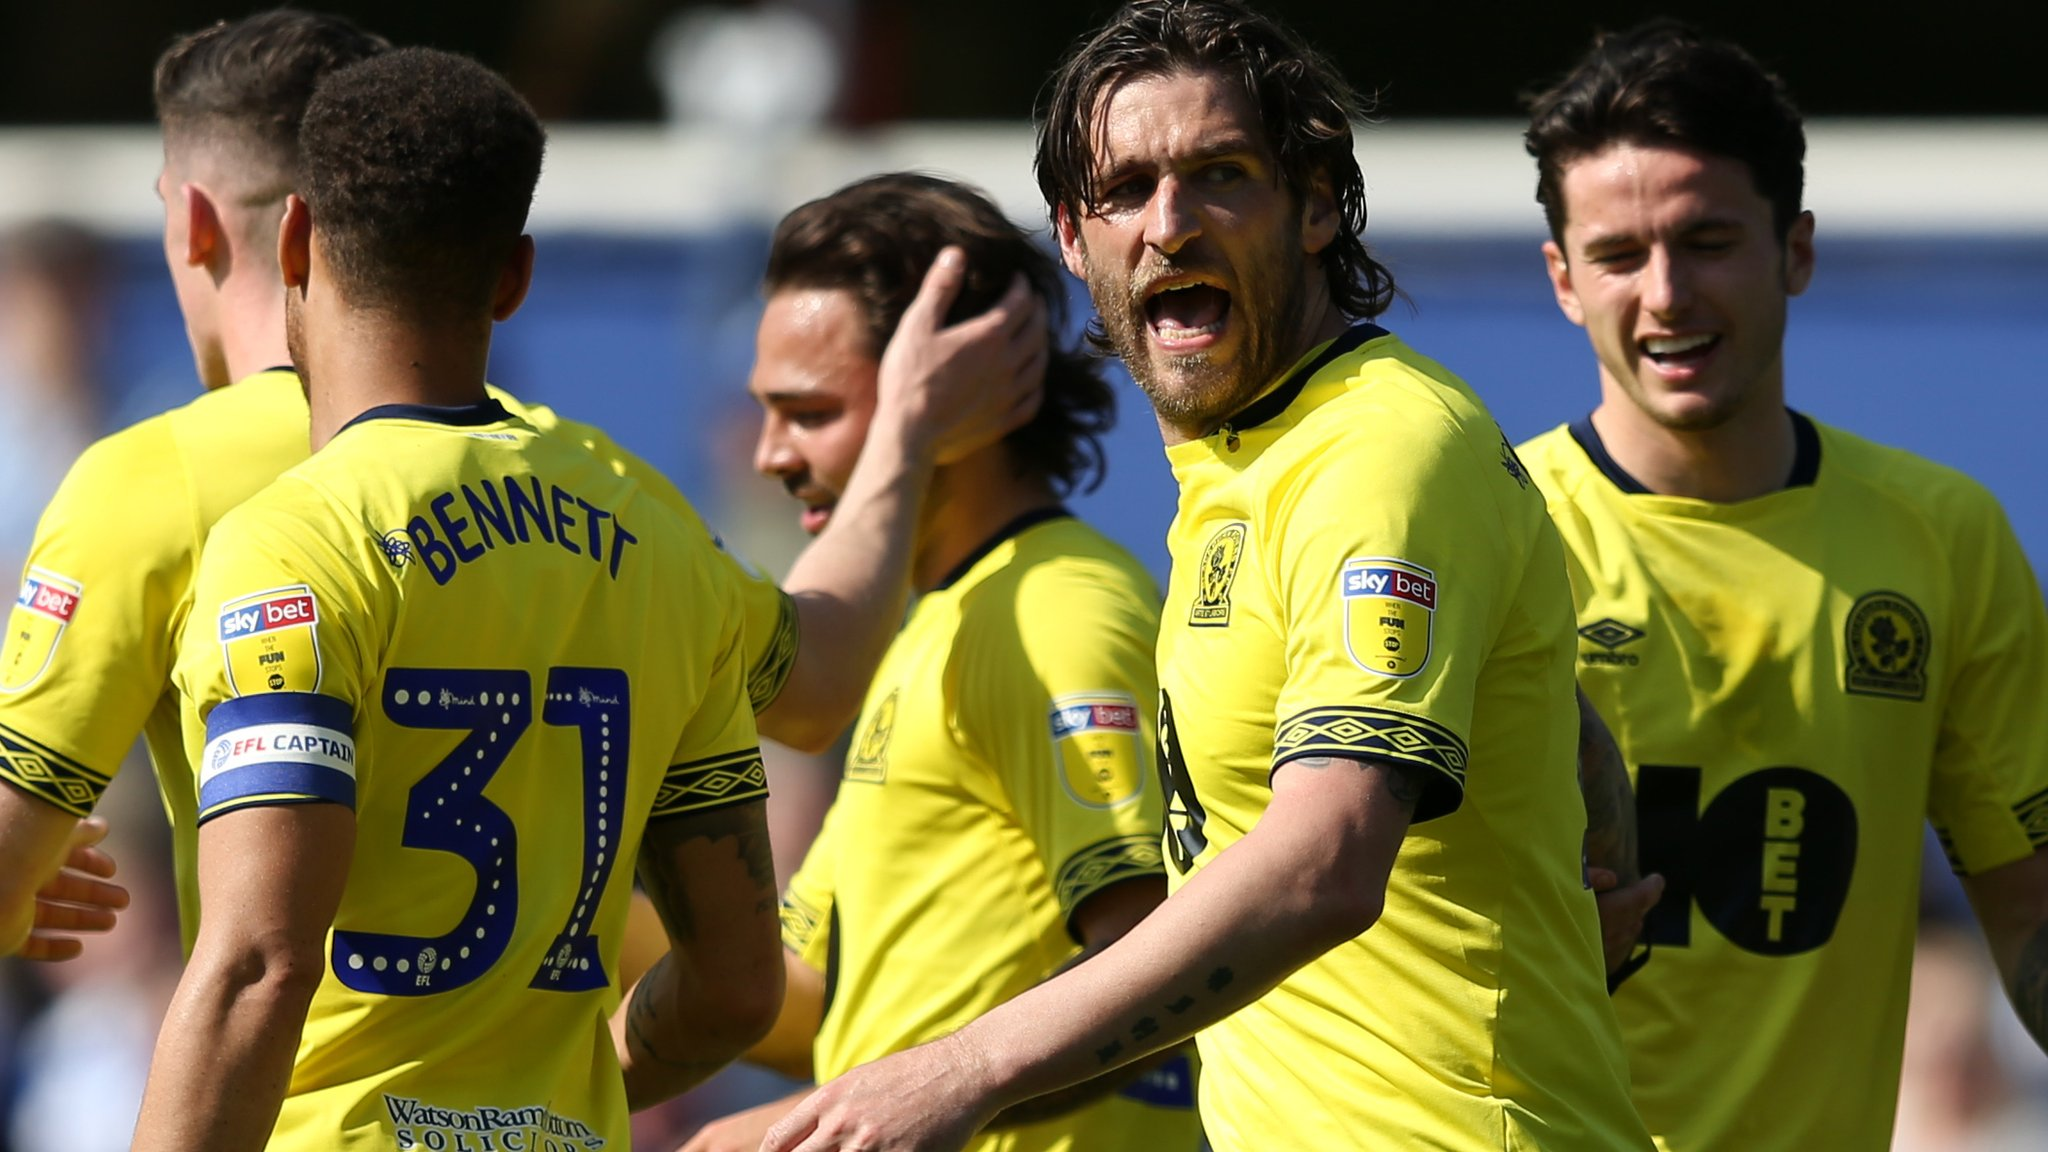 QPR 1-2 Blackburn: Danny Graham and Bradley Dack score to secure third win in a row